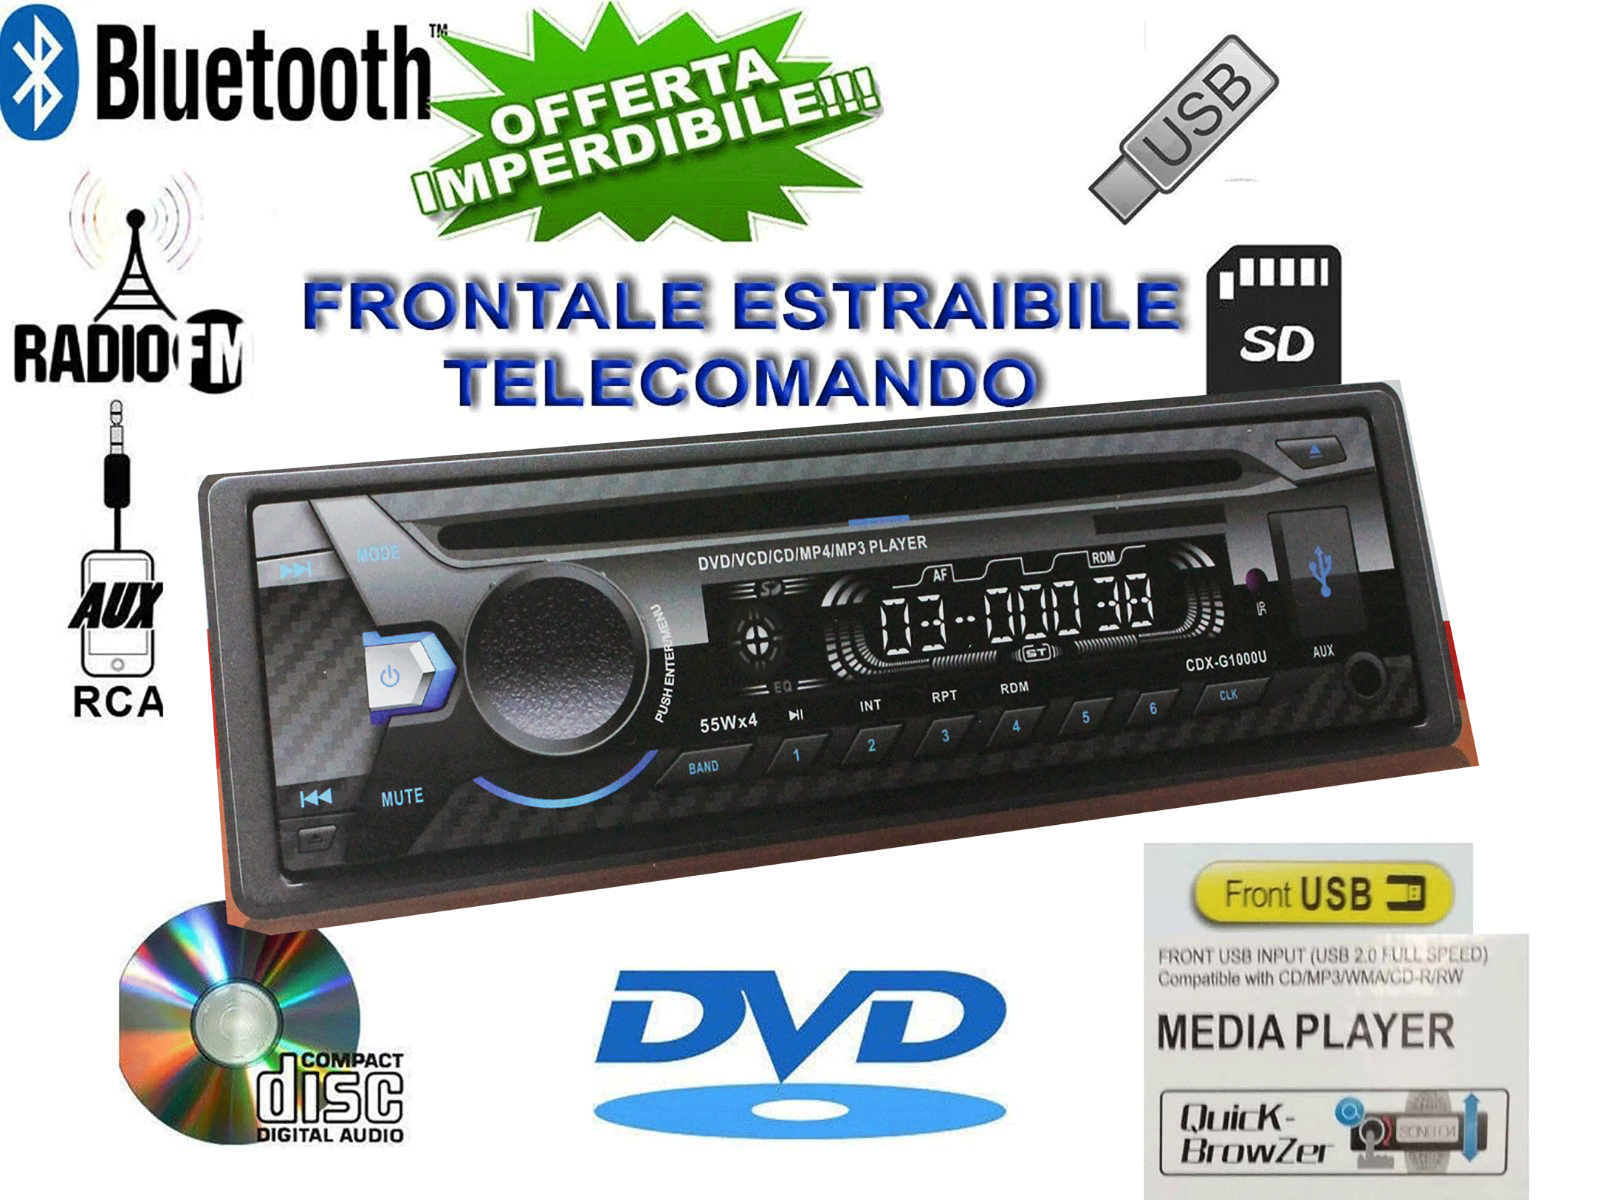 AUTORADIO 1DIN CD DVD MP3 AUX USB SD VIVAVOCE BLUETOOTH STEREO AUTO LETTORE 52W